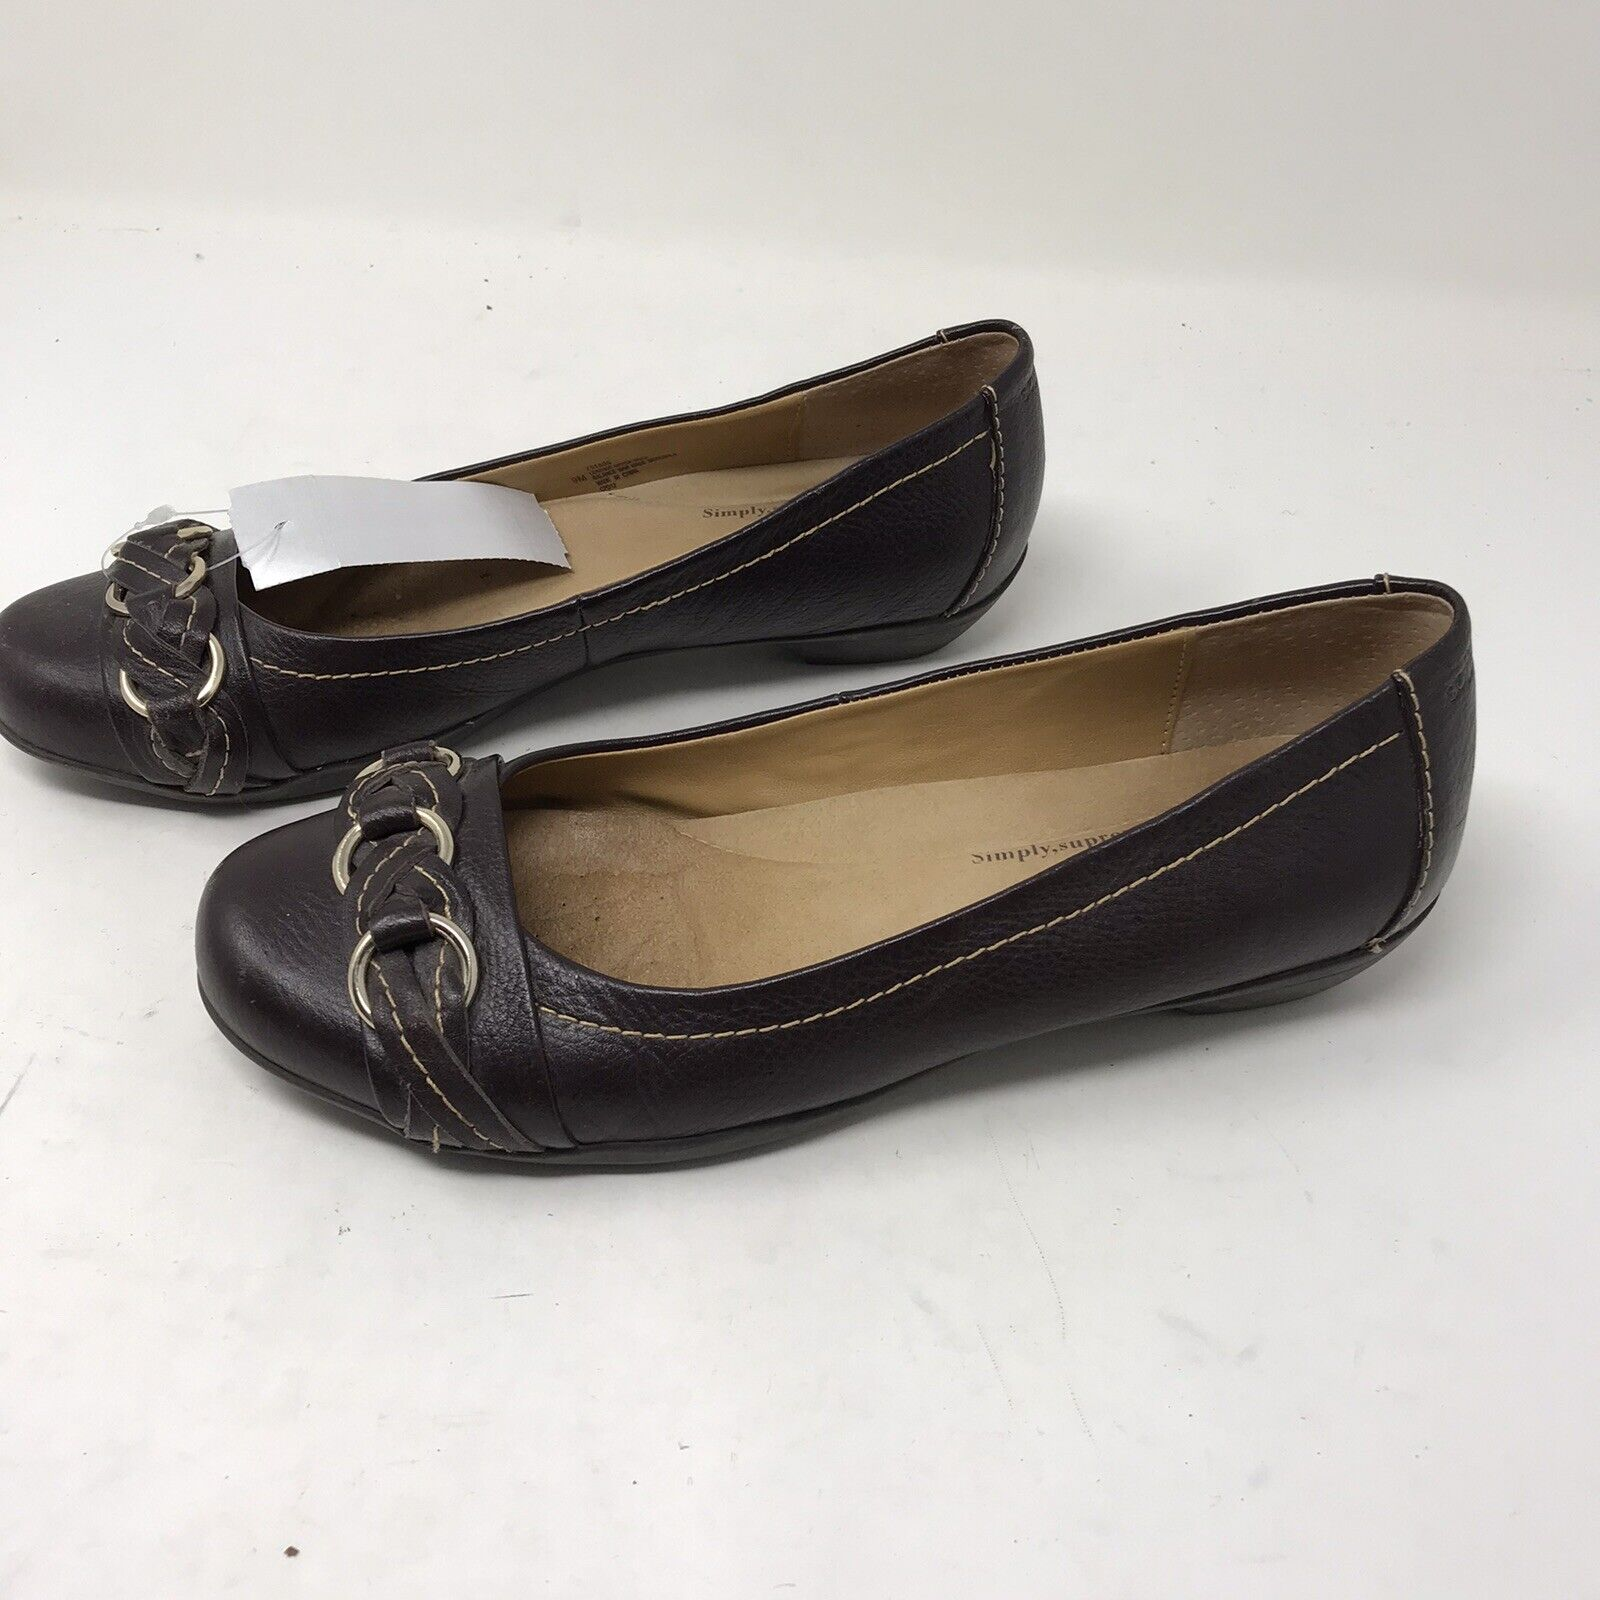 Softspots Womens Shoes Ballet Flats Brown Leather Slip-on Non-slip 9M